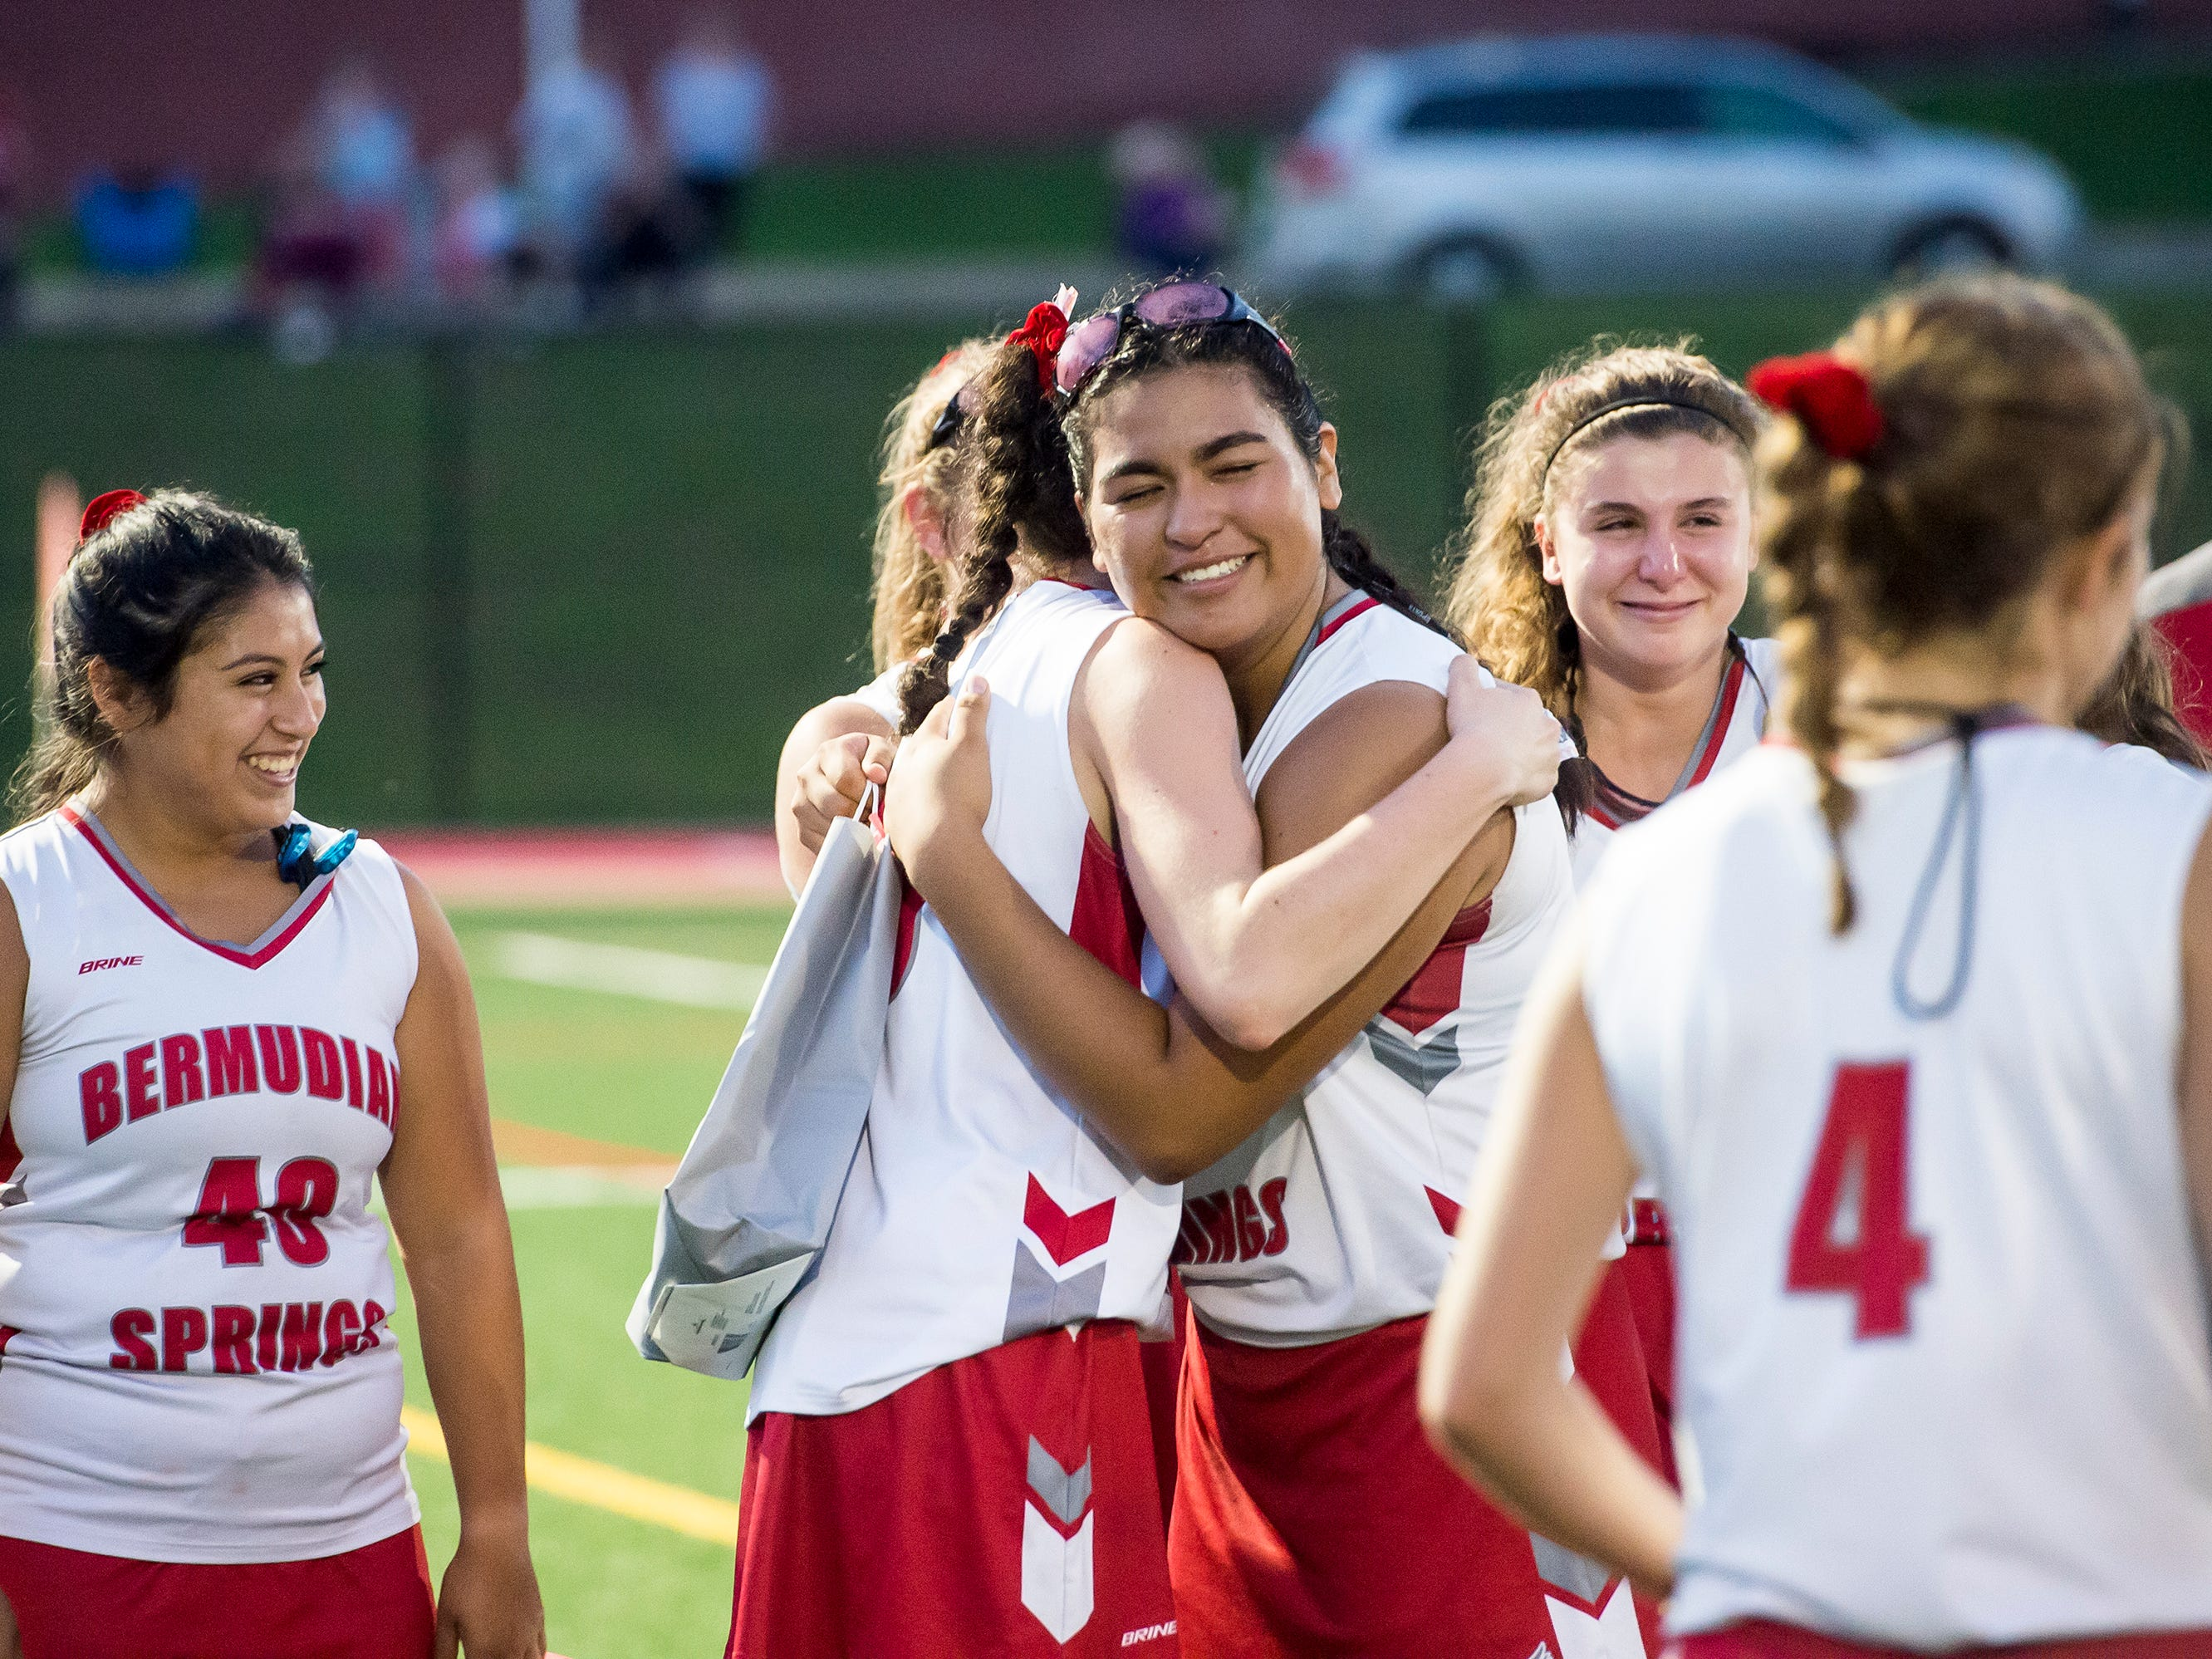 Bermudian Springs senior Jenn Garcia gets a hug from teammate Lillian Peters following a senior night ceremony on Tuesday, October 9, 2018.